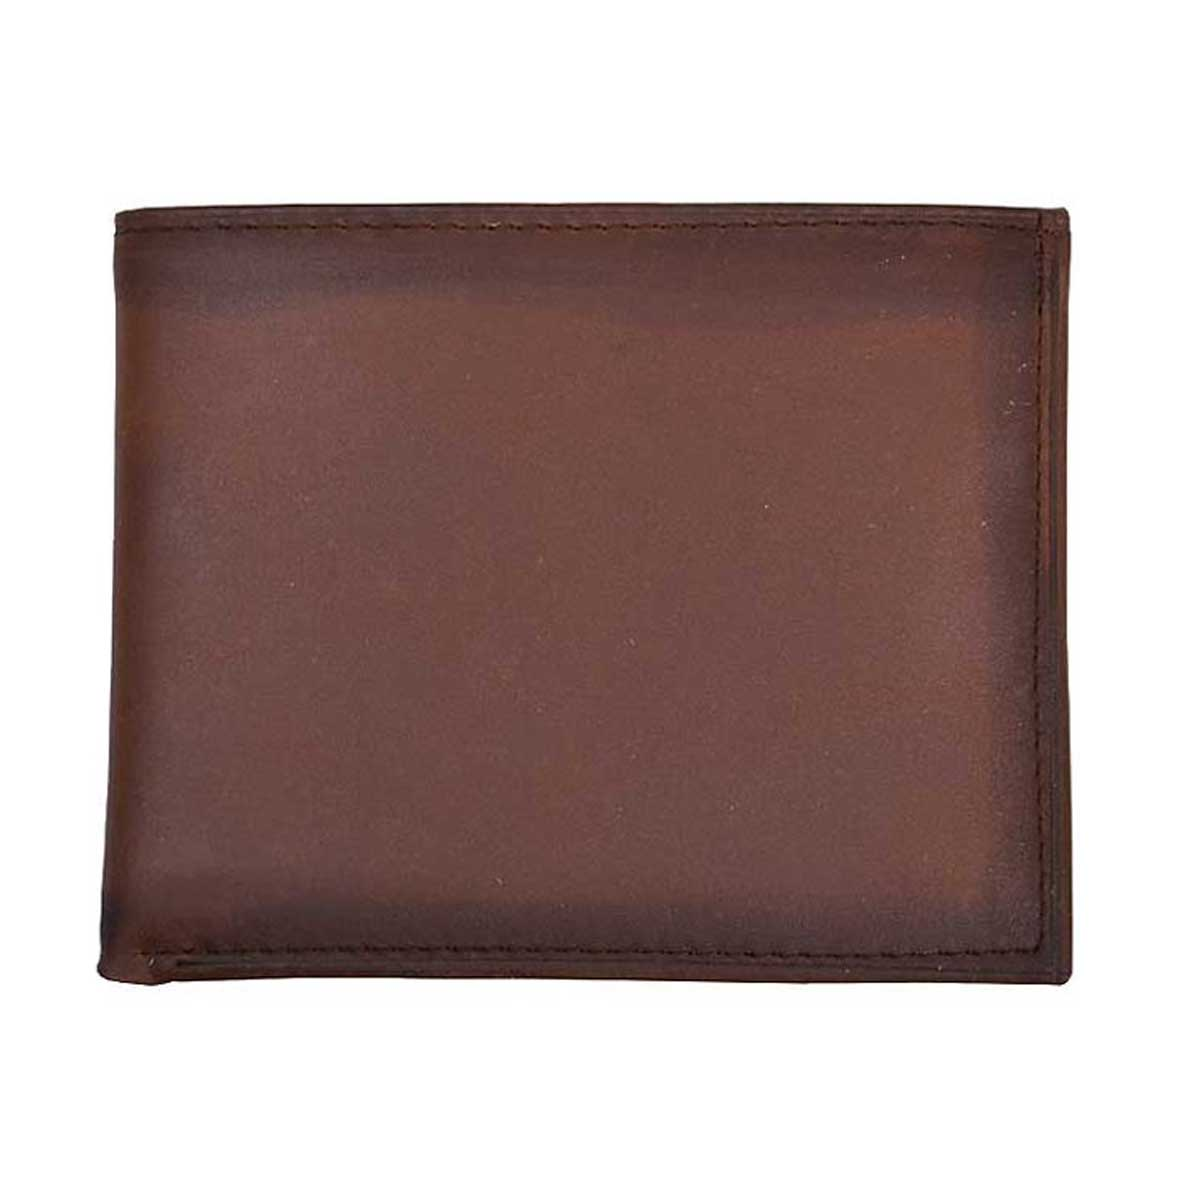 M & F Western 3D Distressed Leather Flip-fold Wallet